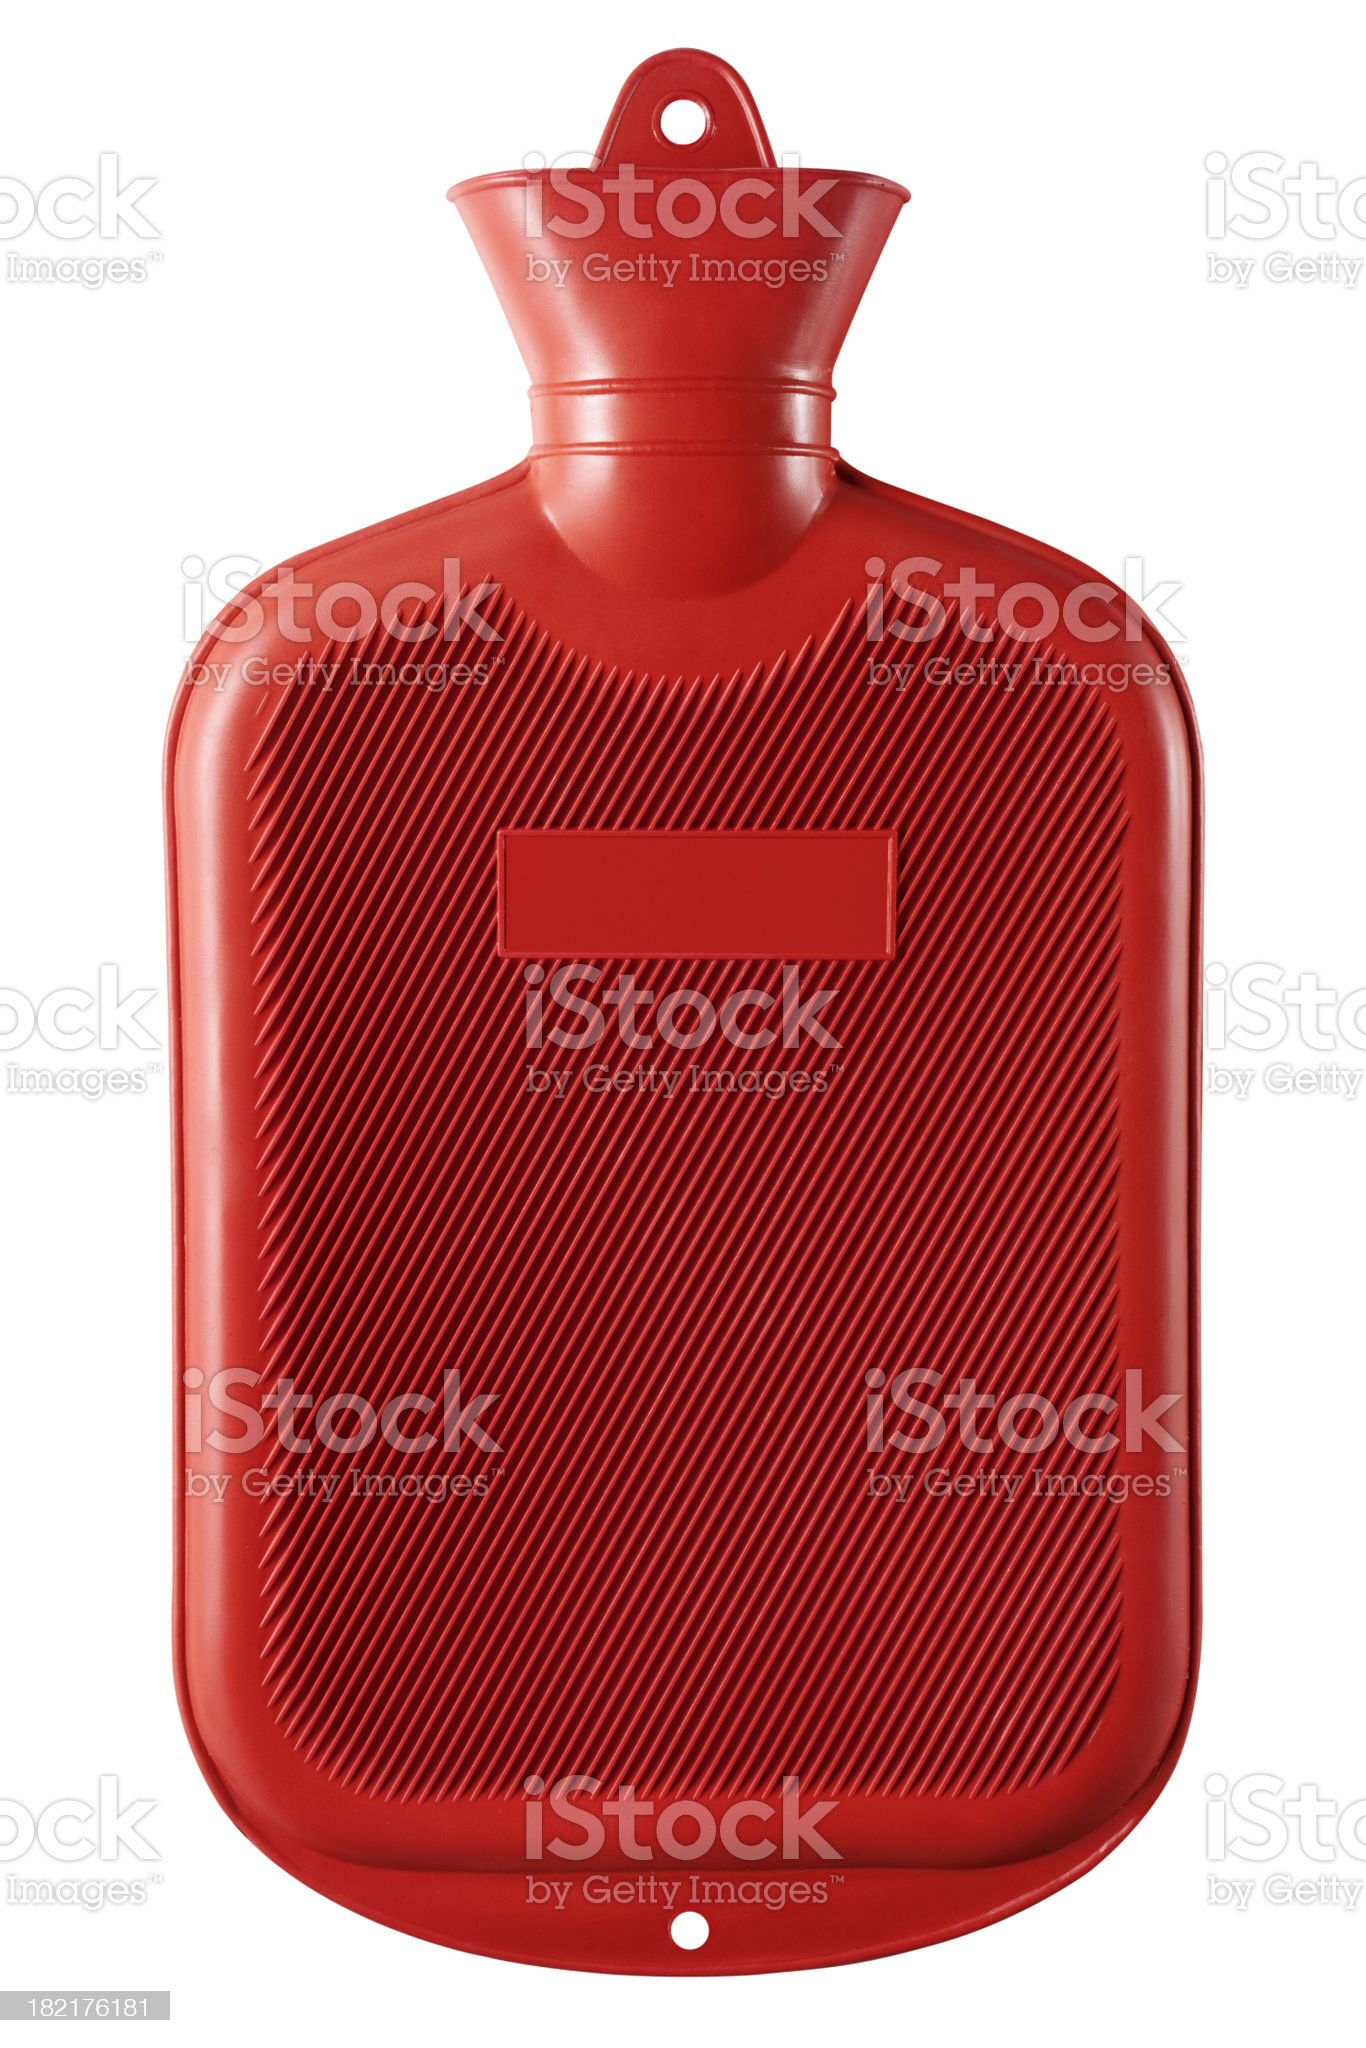 Hot Water Bottle royalty-free stock photo